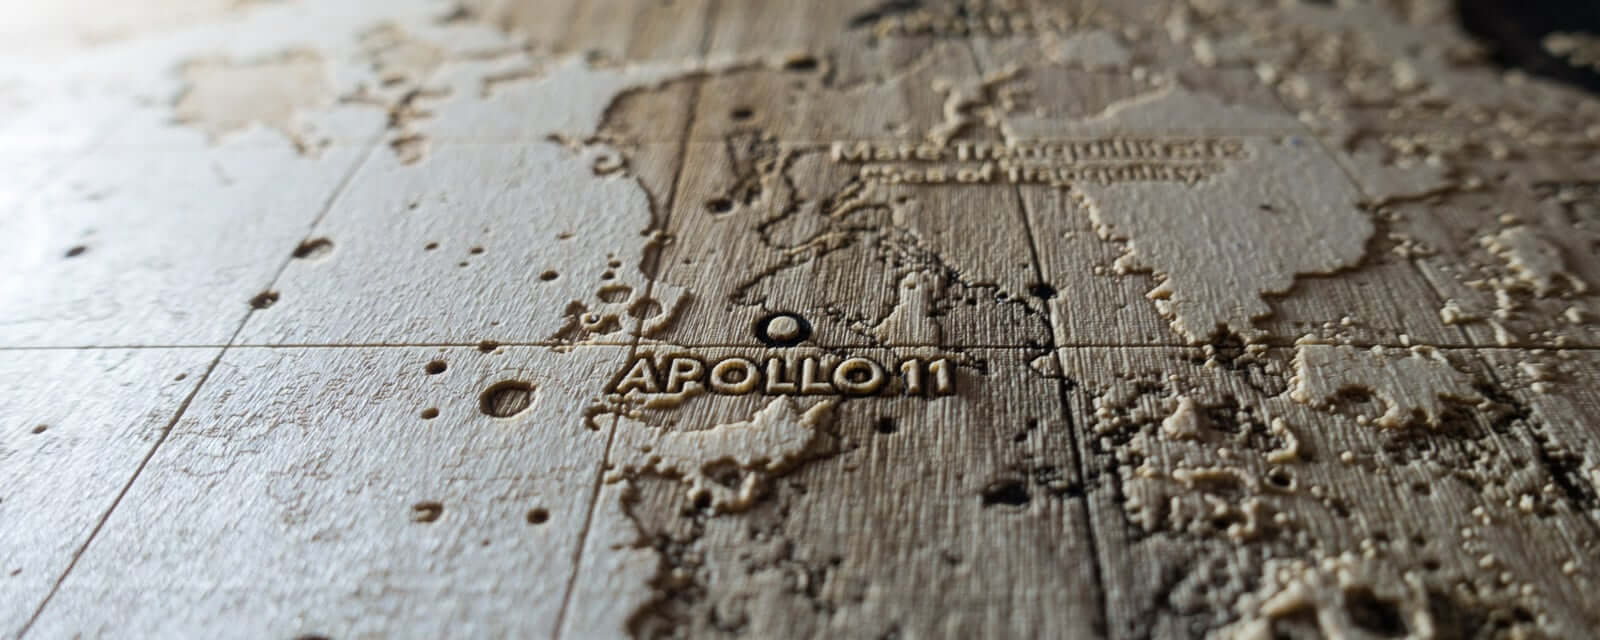 Topographic map of landing site of Apollo 11 on the Moon. Laser engraving in wood.